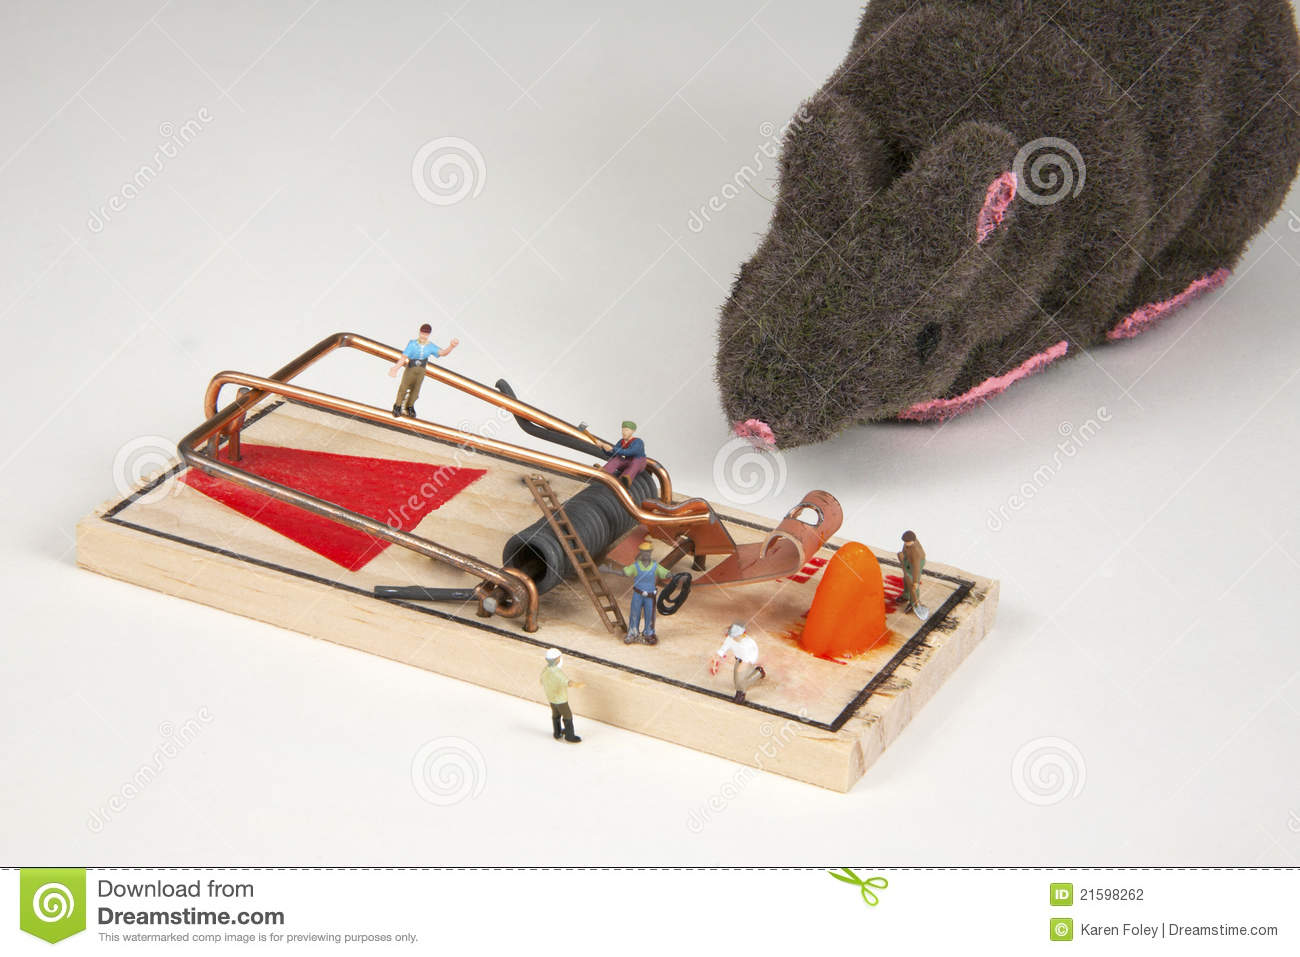 how to build a mousetrap